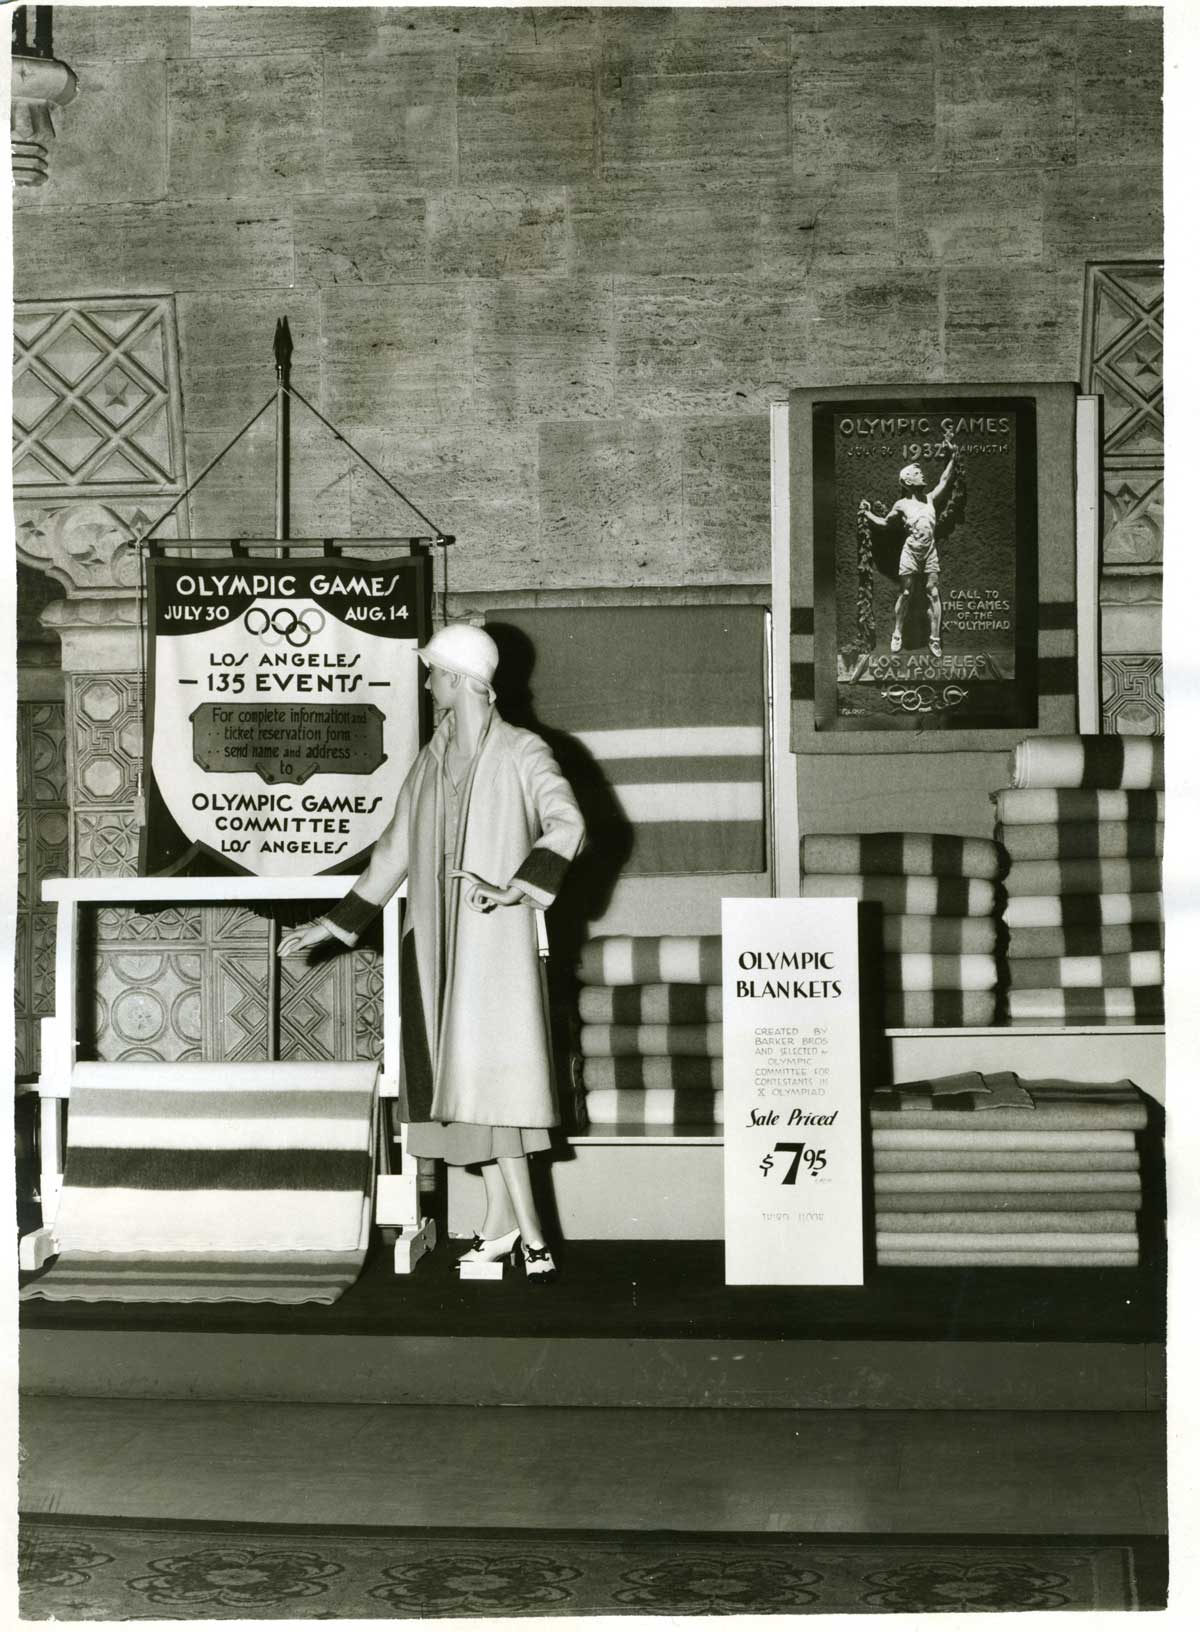 A display with striped blankets and some outerwear honoring the 1932 Olympic games in Los Angeles